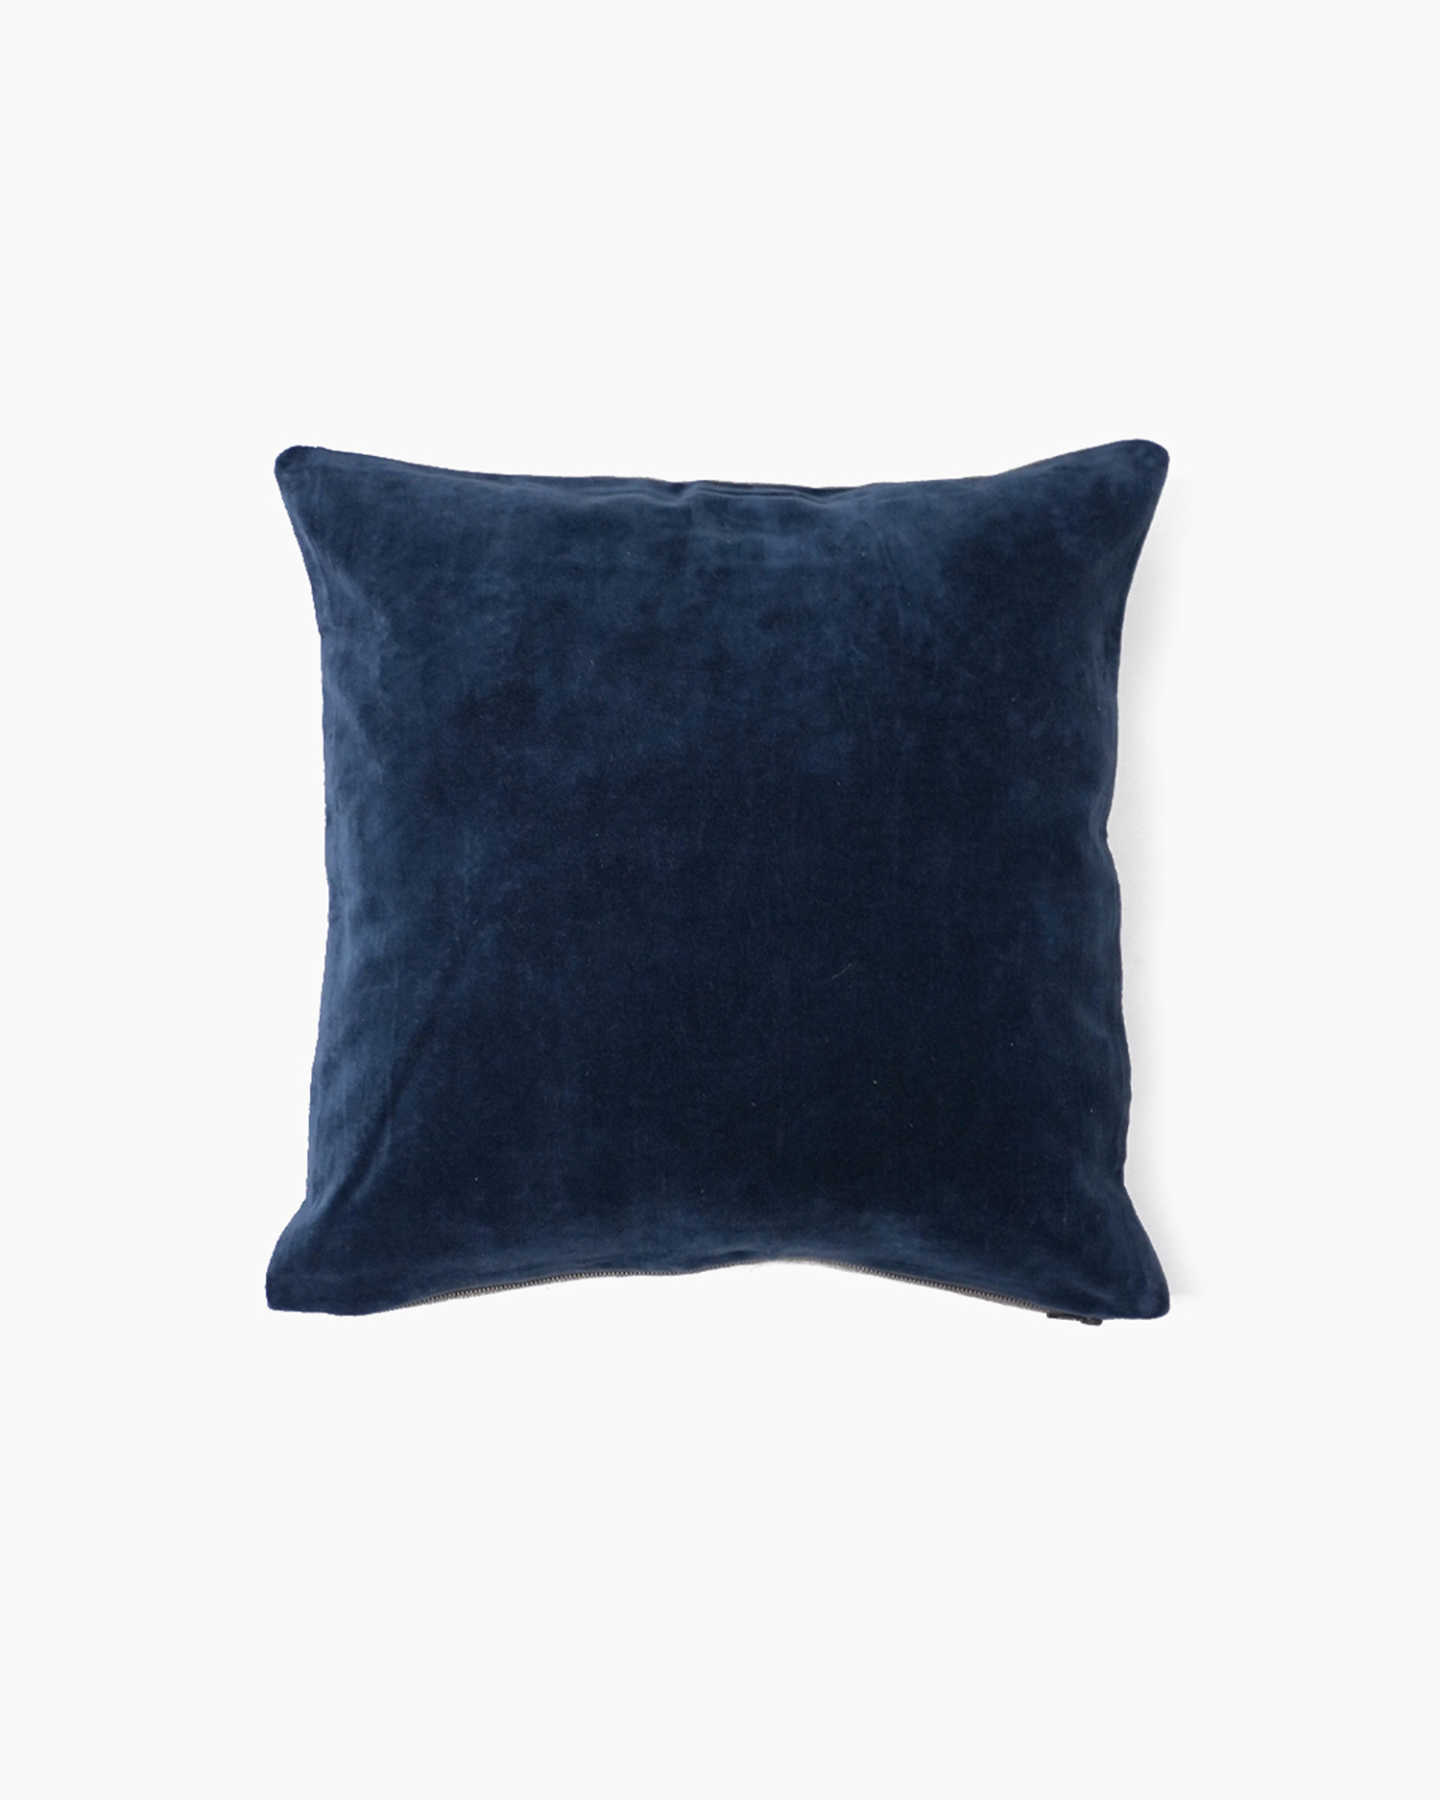 Plush Velvet Pillow Cover  - Navy - 0